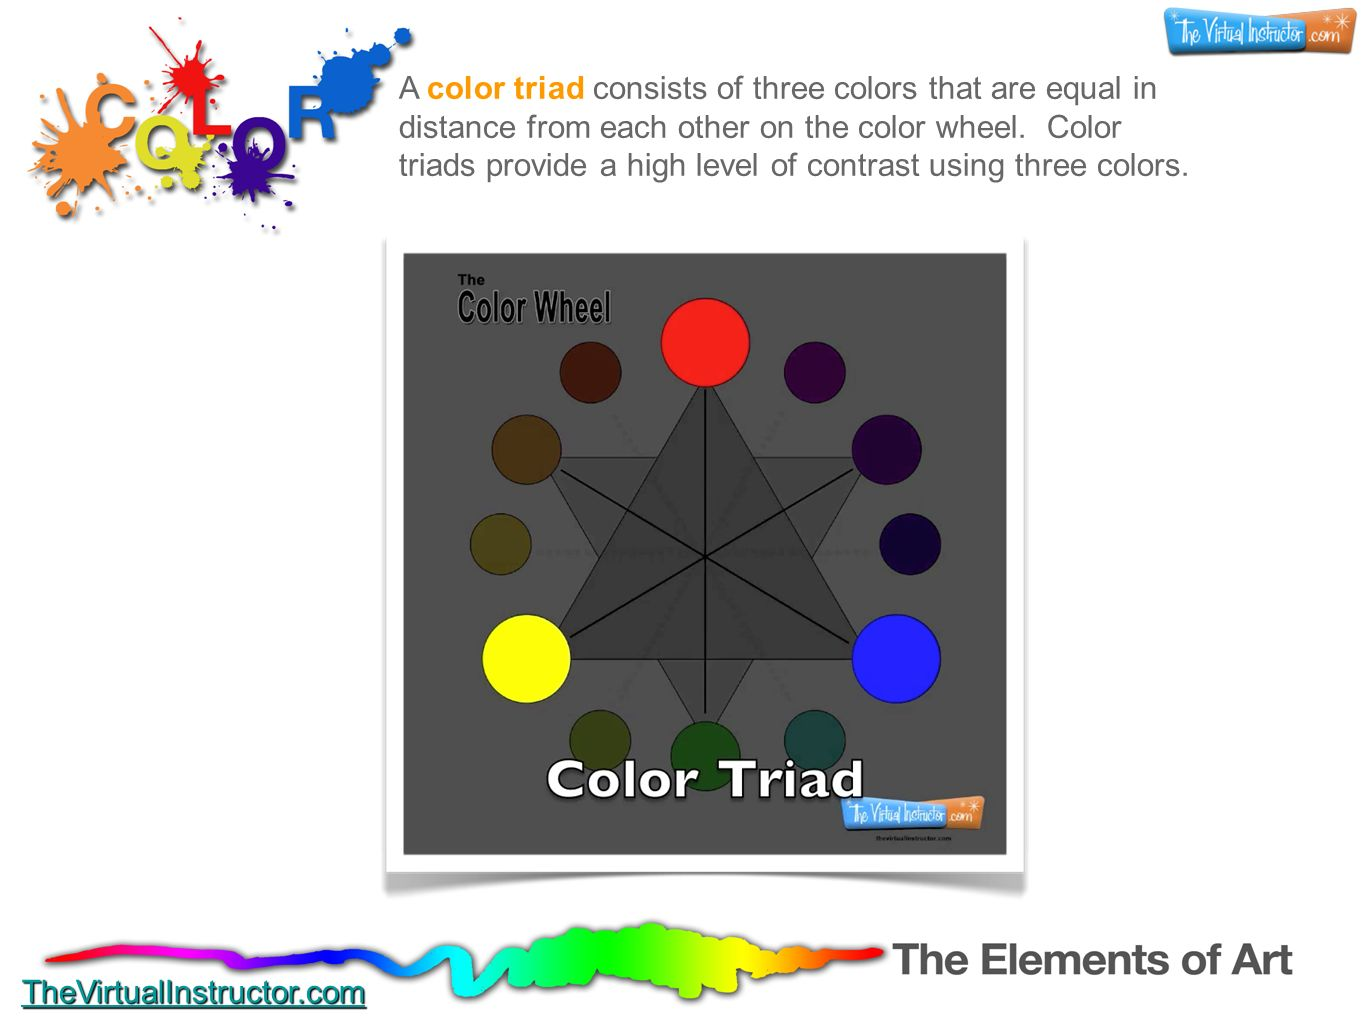 Color The Elements Of Art Thevirtualinstructor Com Ppt Interiors Inside Ideas Interiors design about Everything [magnanprojects.com]